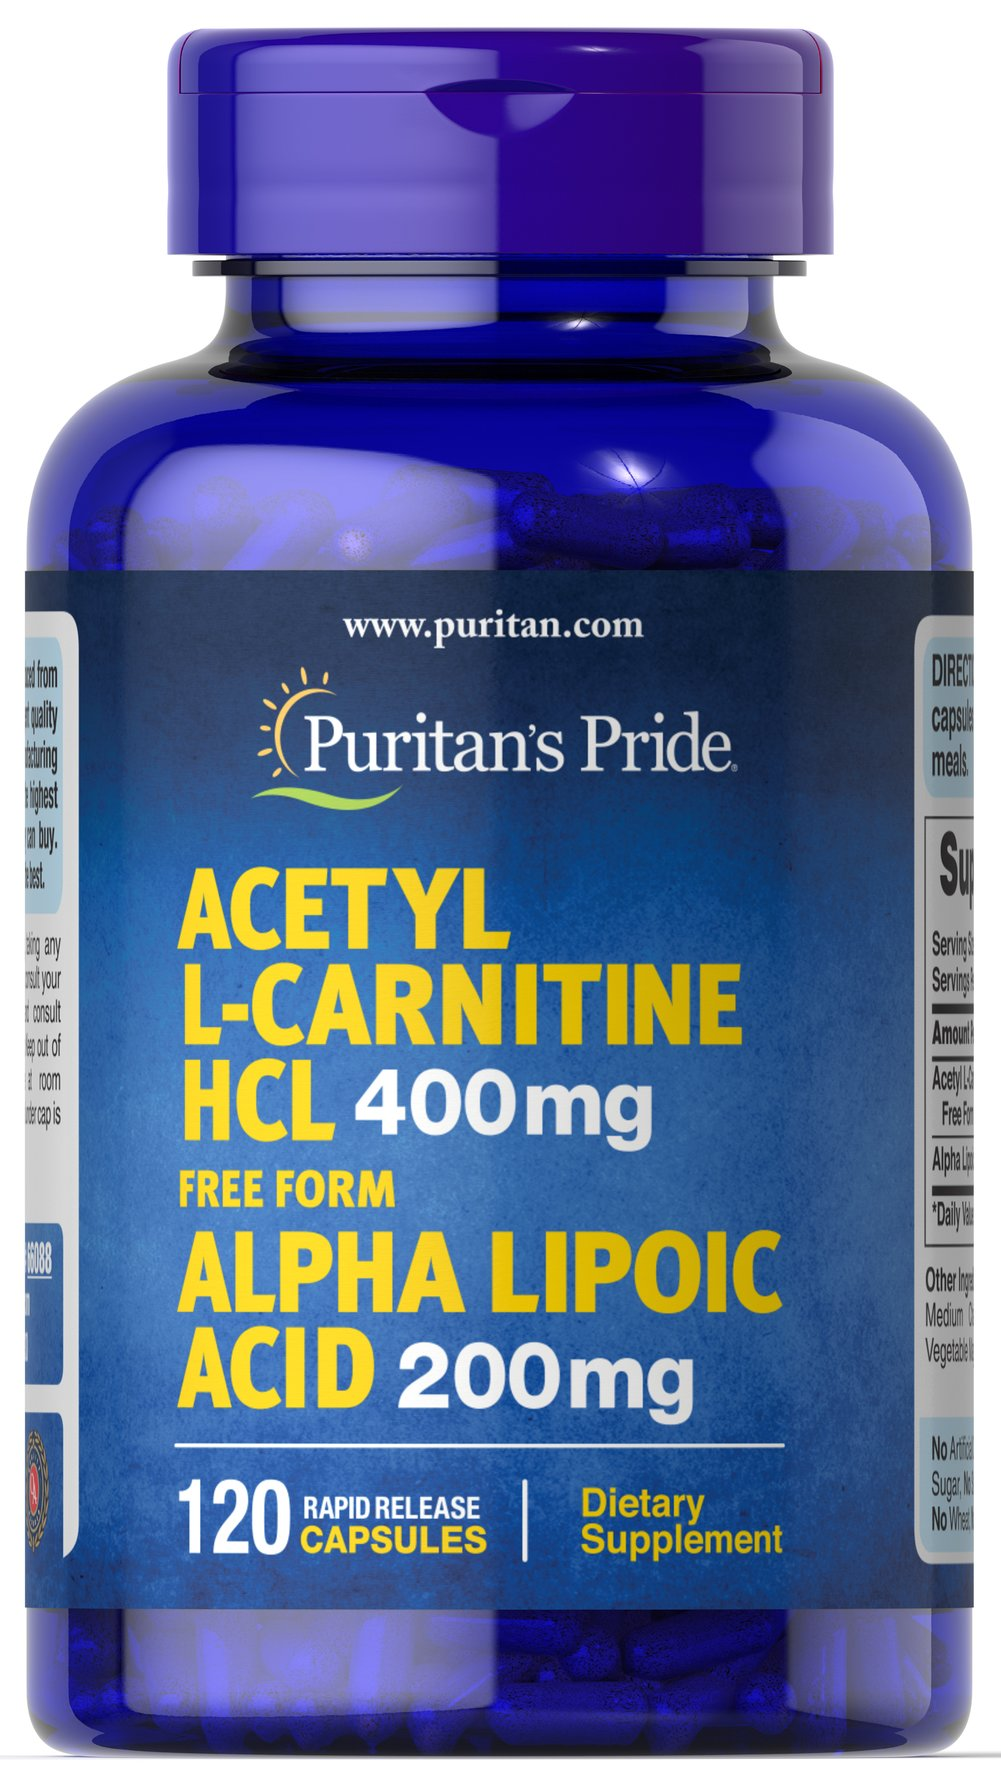 Acetyl L-Carnitine 400 mg with Alpha Lipoic Acid 200 mg <p>Supports Antioxidant Health**</p><p>Supports Metabolic Functioning**</p><p>Use as part of your healthy aging program**</p><p>As we age, our cells are less able to counteract the cell-damaging effects of free radicals and oxidative stress. Oxidative stress can lead to the premature aging of cells.</p> 120 Capsules 400 mg/200 mg $40.79